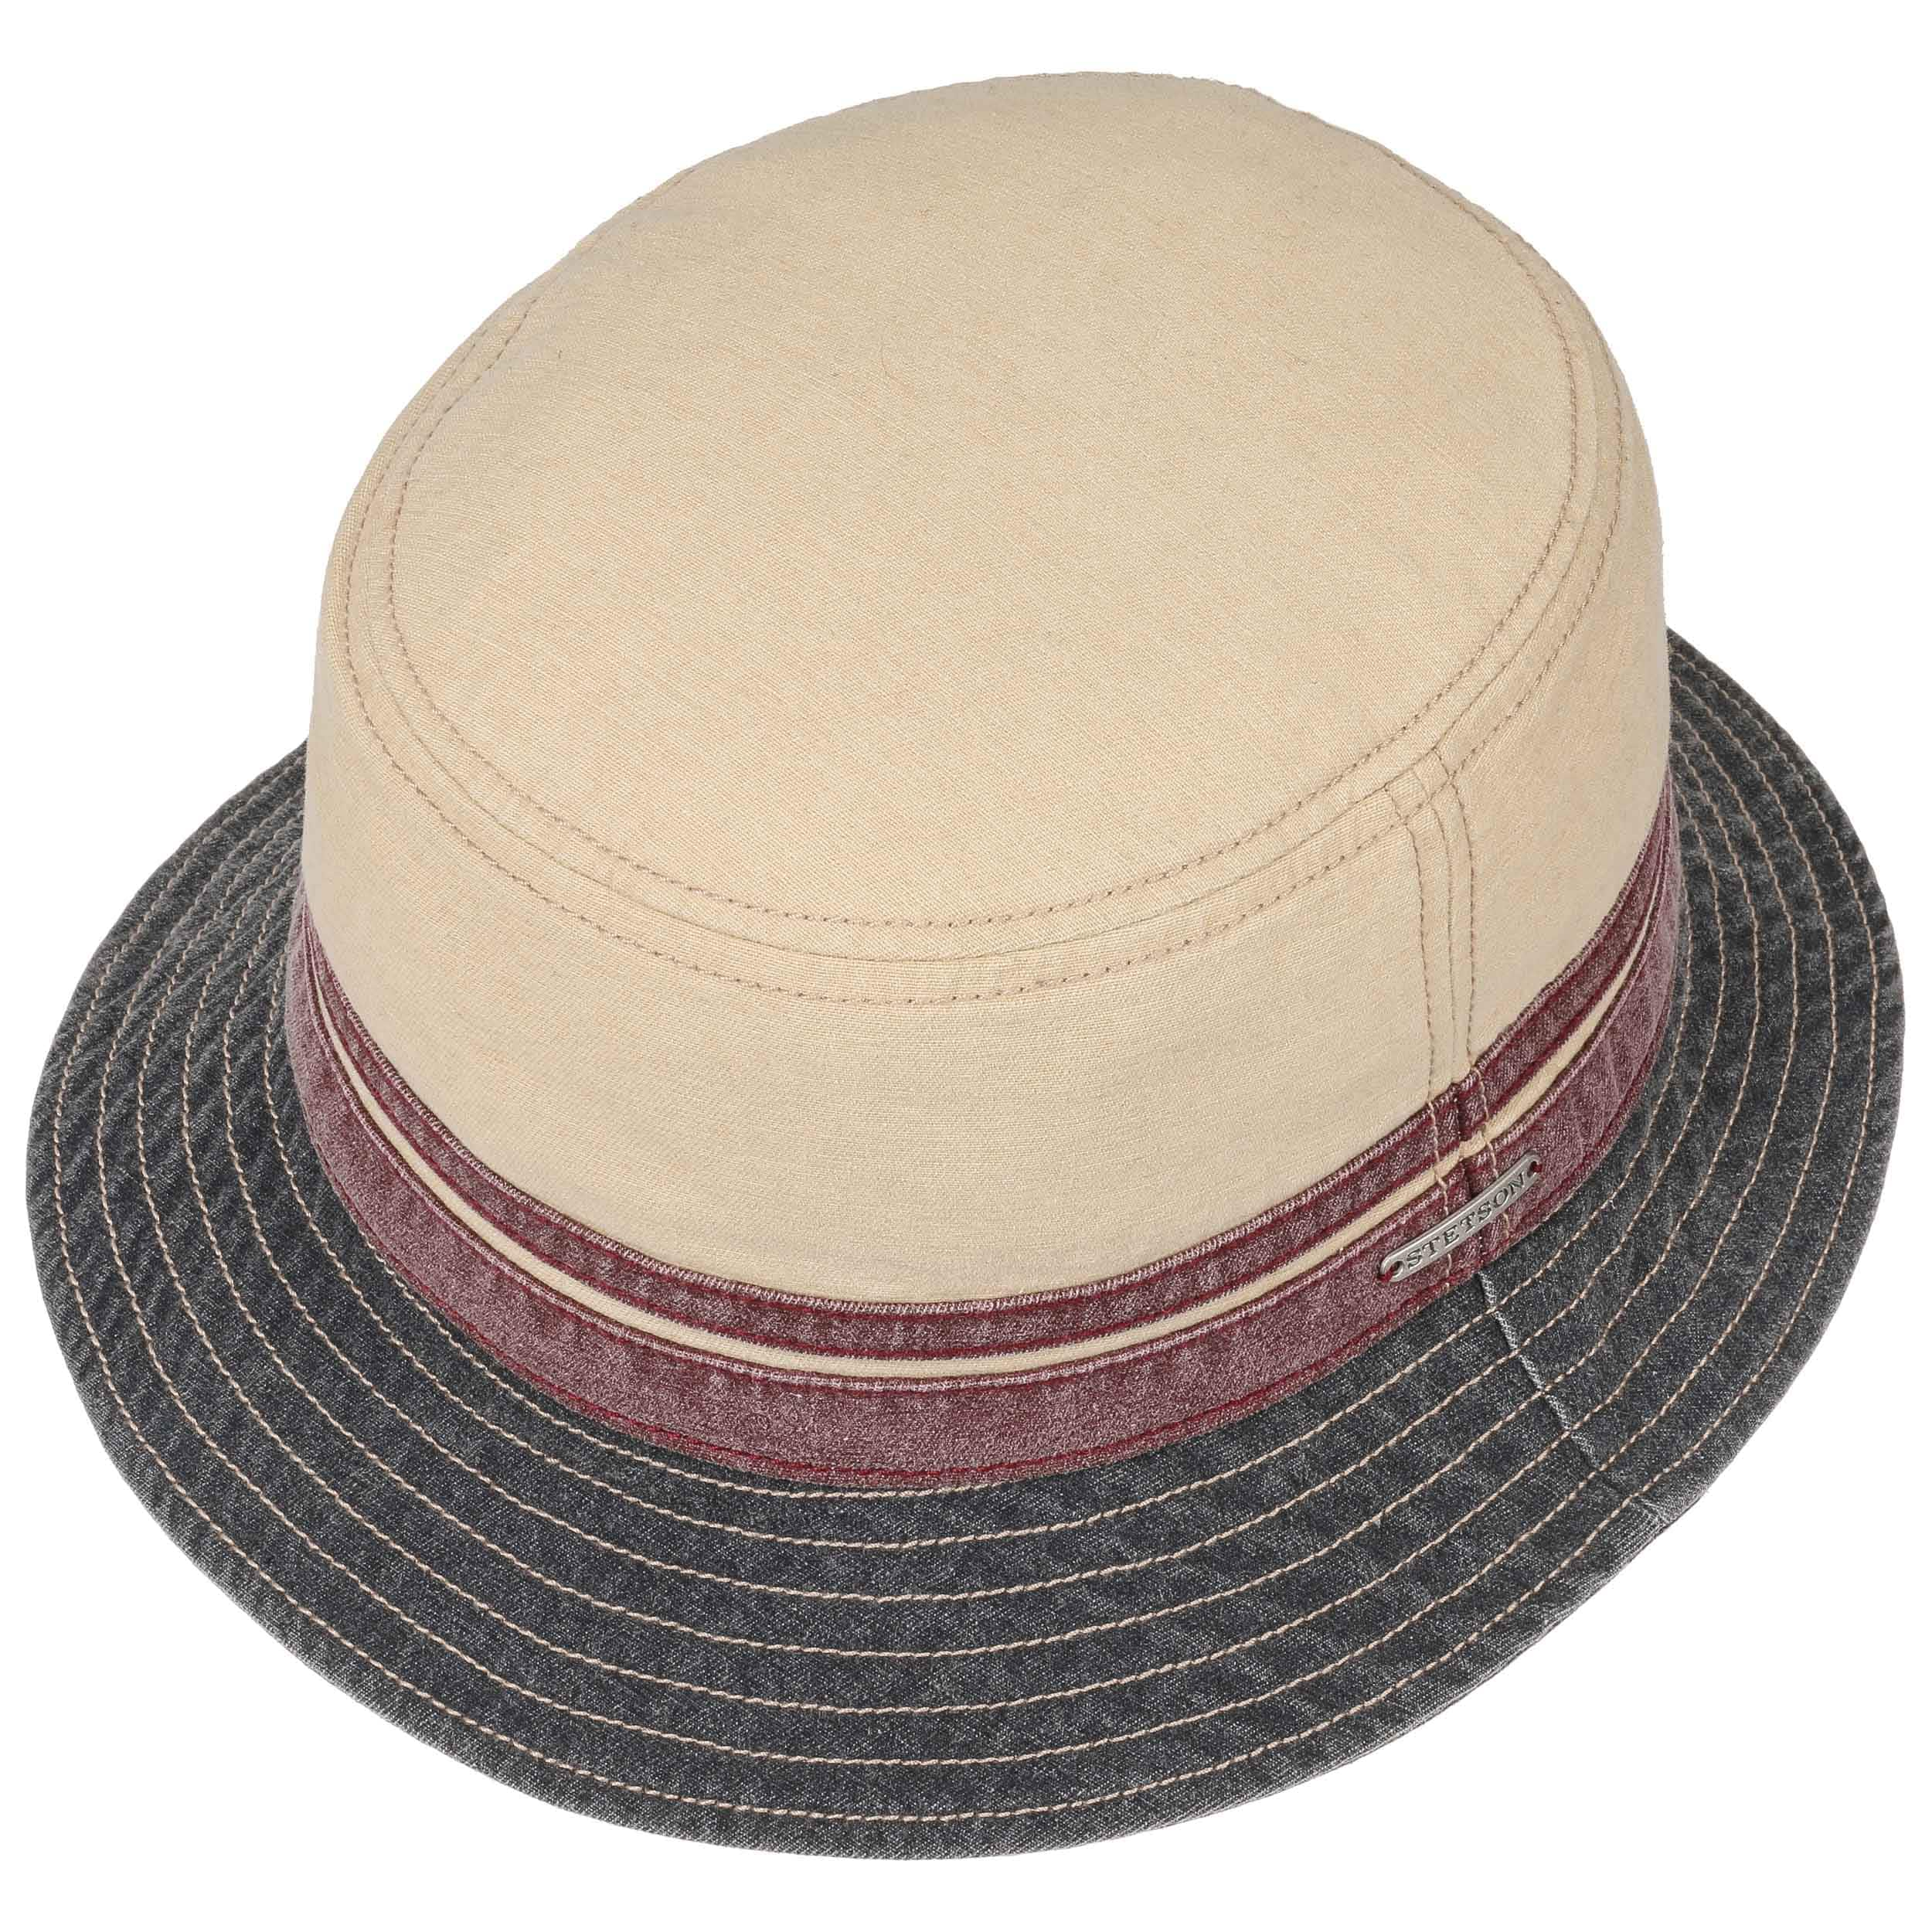 76e1bcf50 Washed Cotton Bucket Hat by Stetson